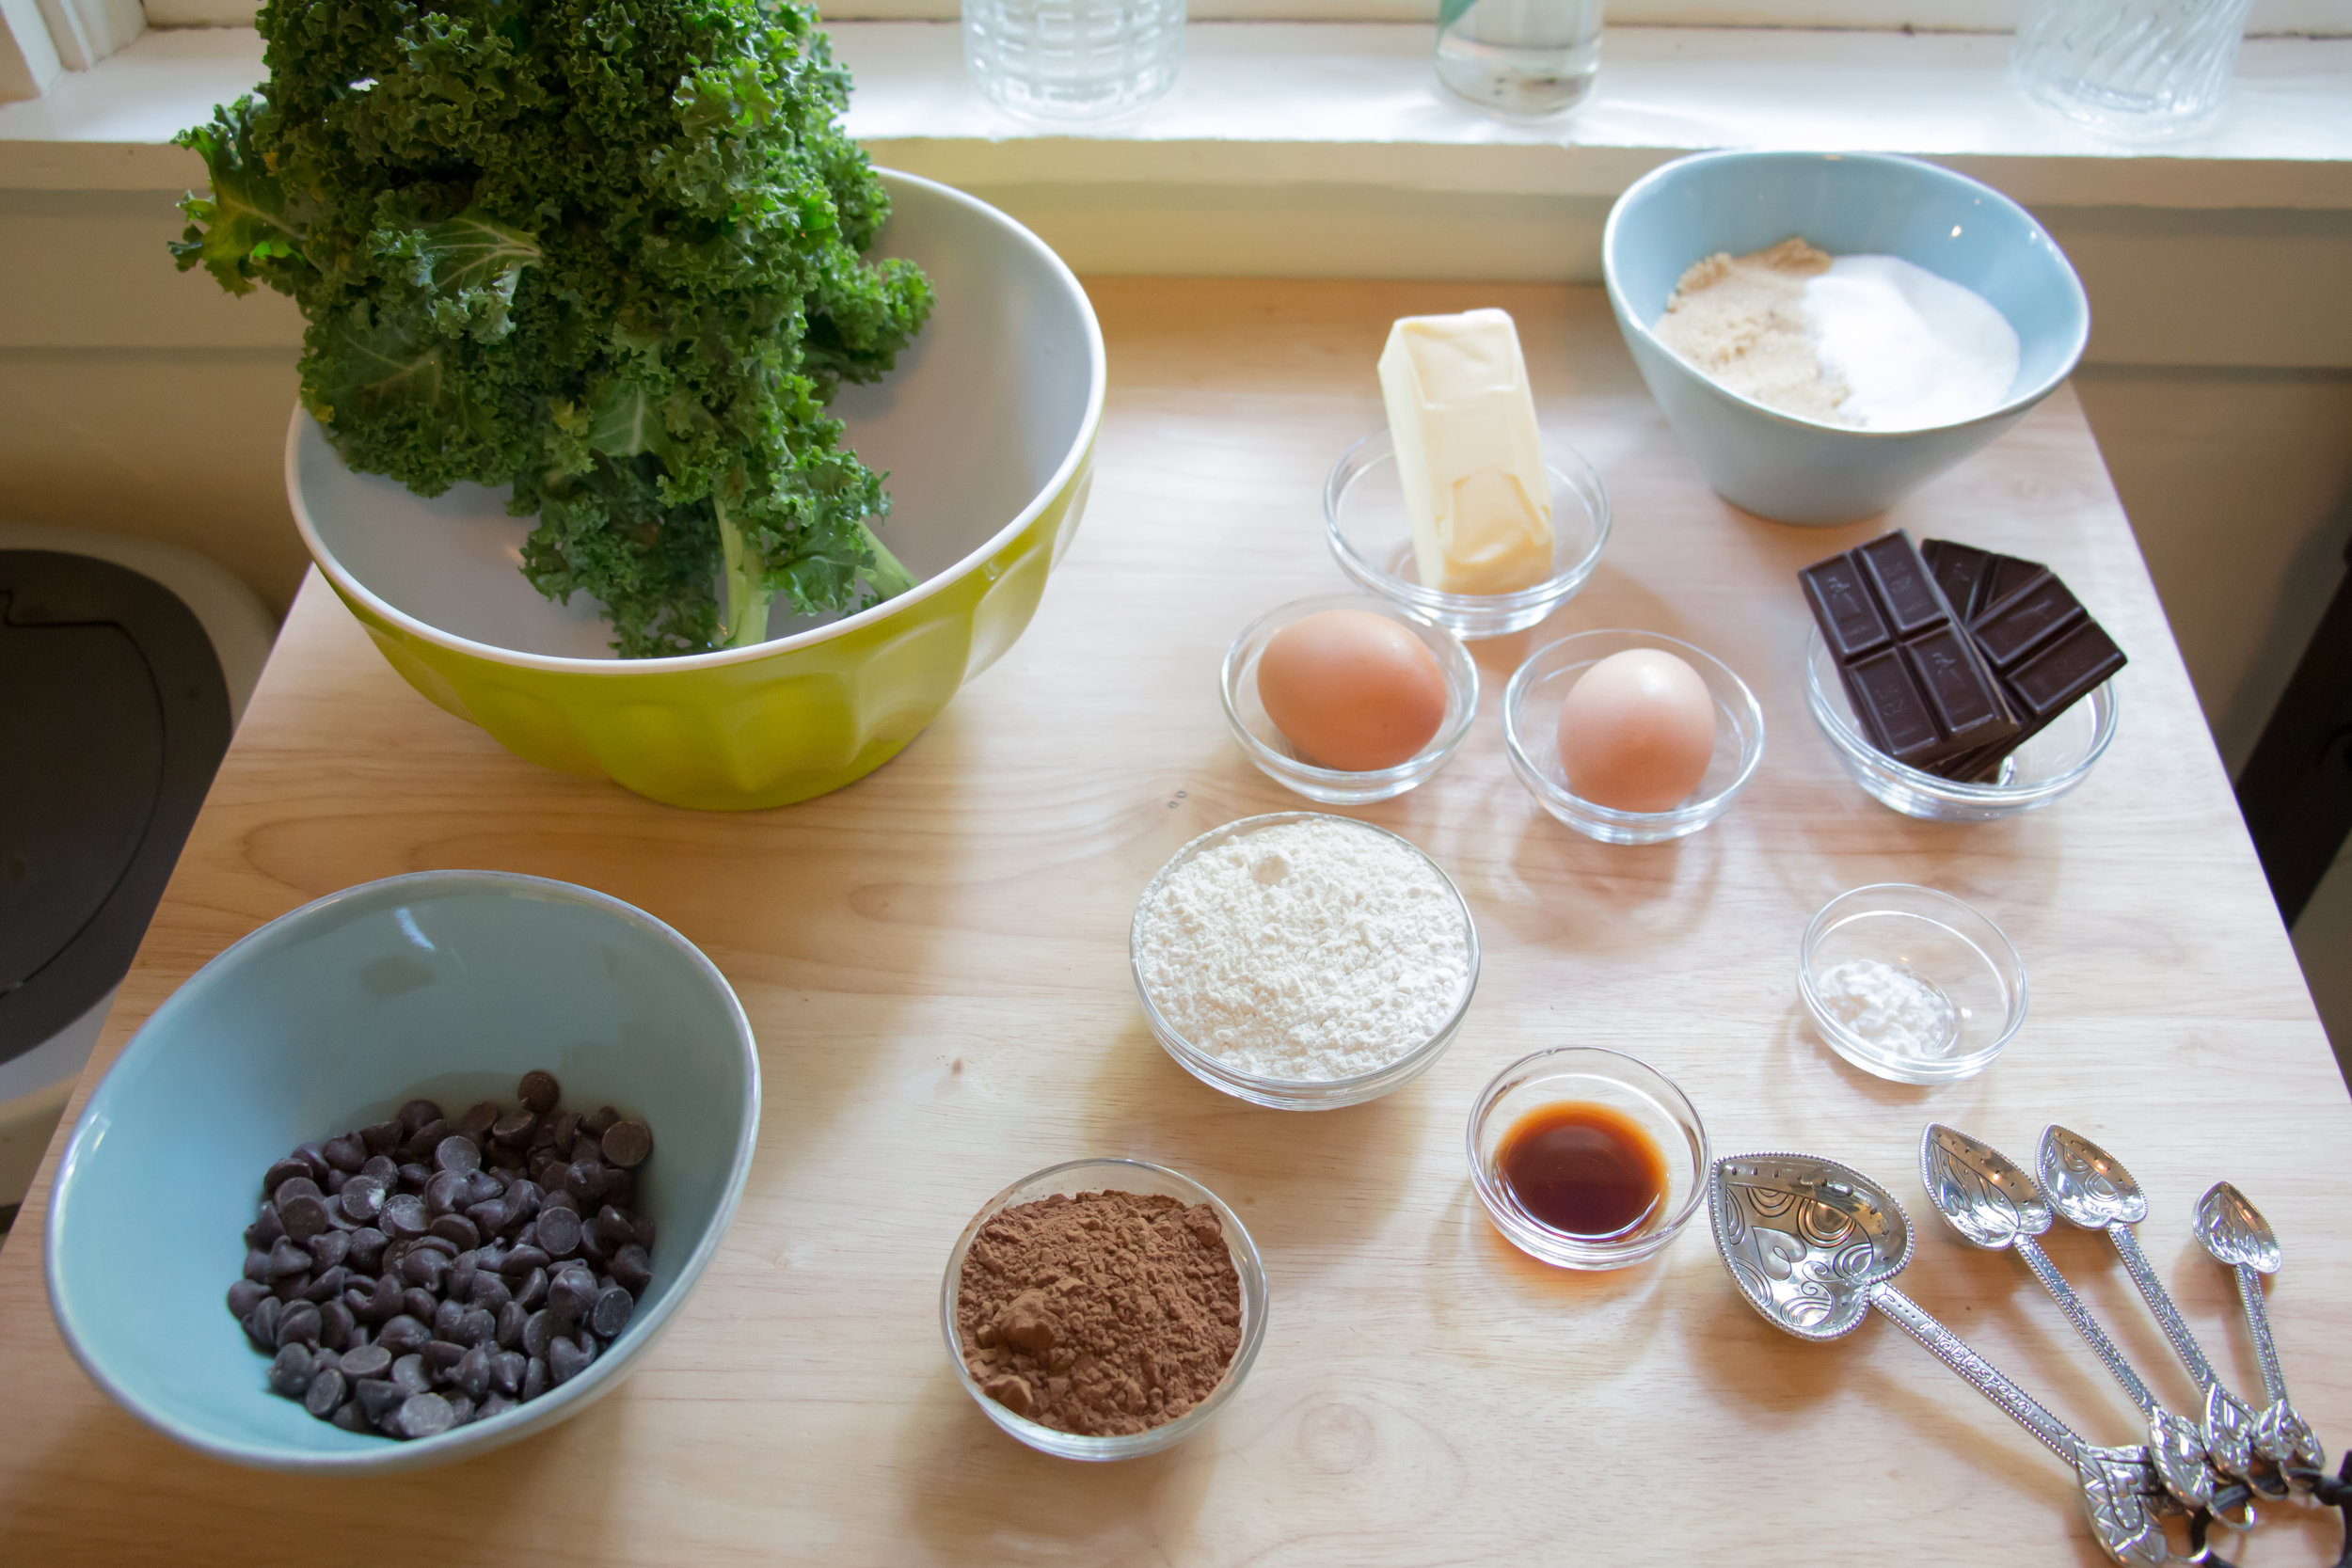 Having ingredients measured out ahead of time makes the baking process much smoother!